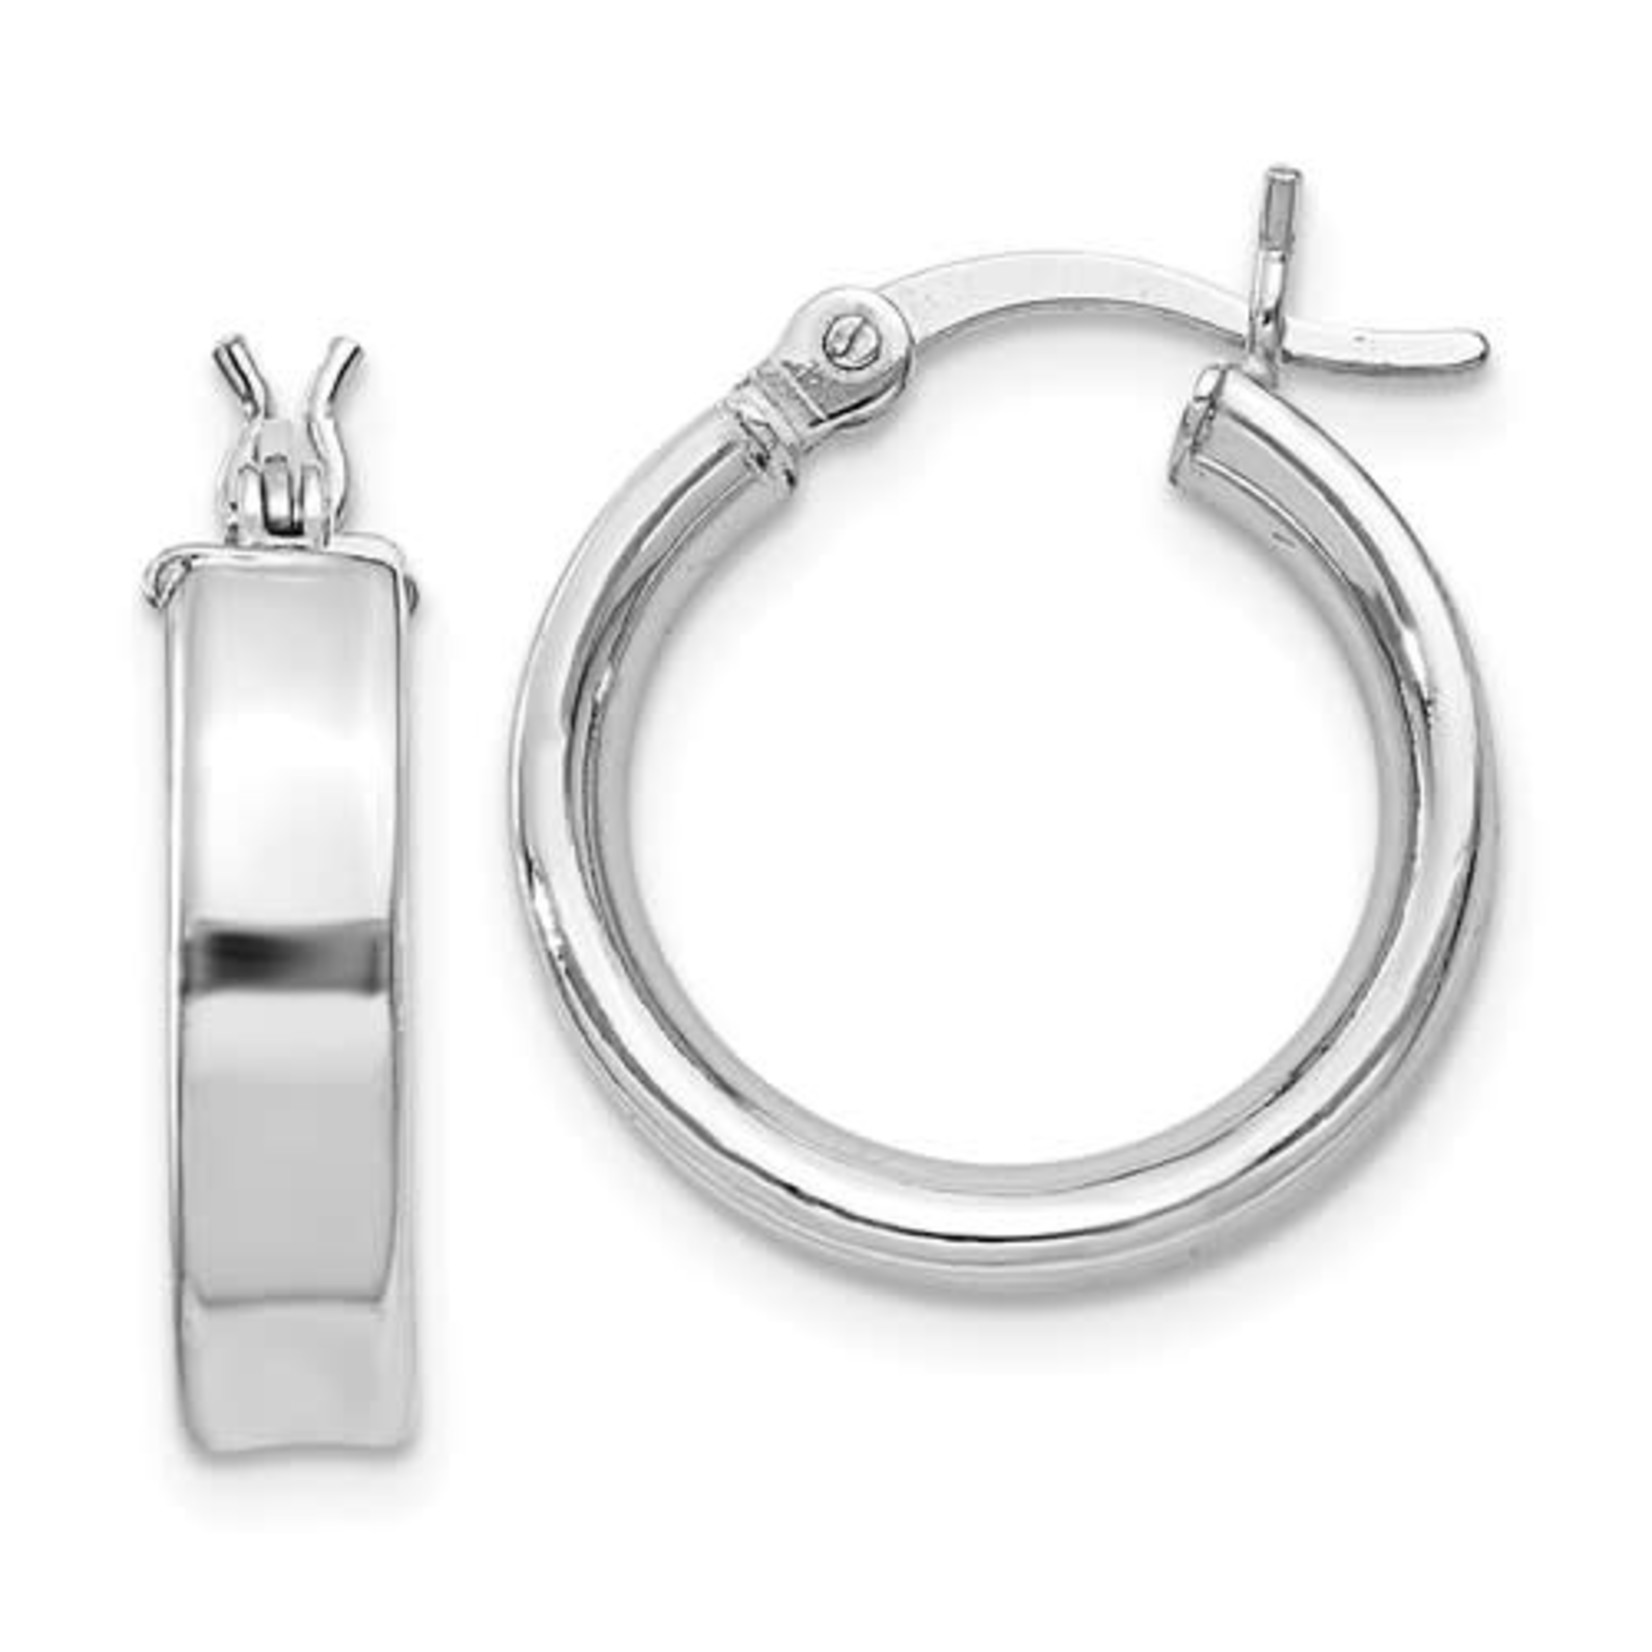 This Is Life My Go To Sterling Silver Hoop Earrings